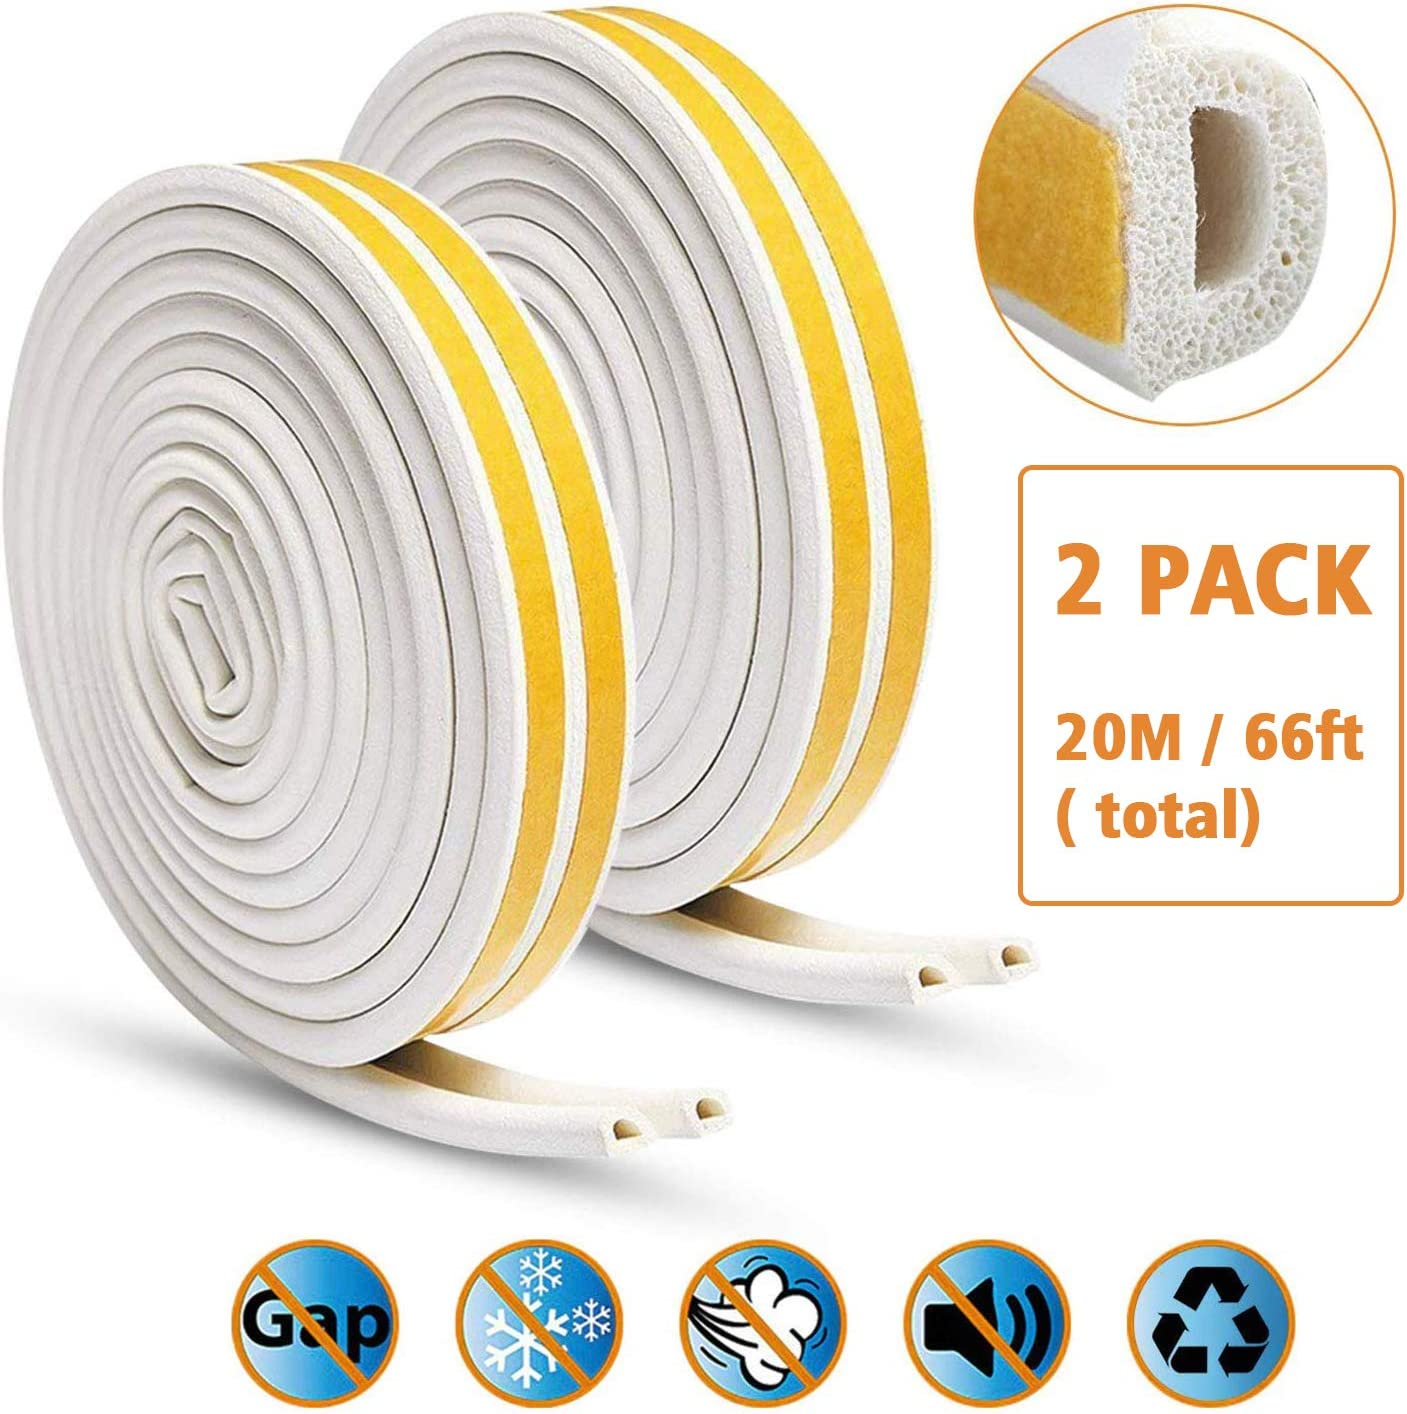 2 Pack Window Seal Strip for Doors and Windows KELIIYO Door Weather Stripping Self-adhisive Foam Weather Strip Door Seal Strip Insulation Gap Blocker Epdm D Type 66ft Brown 20m